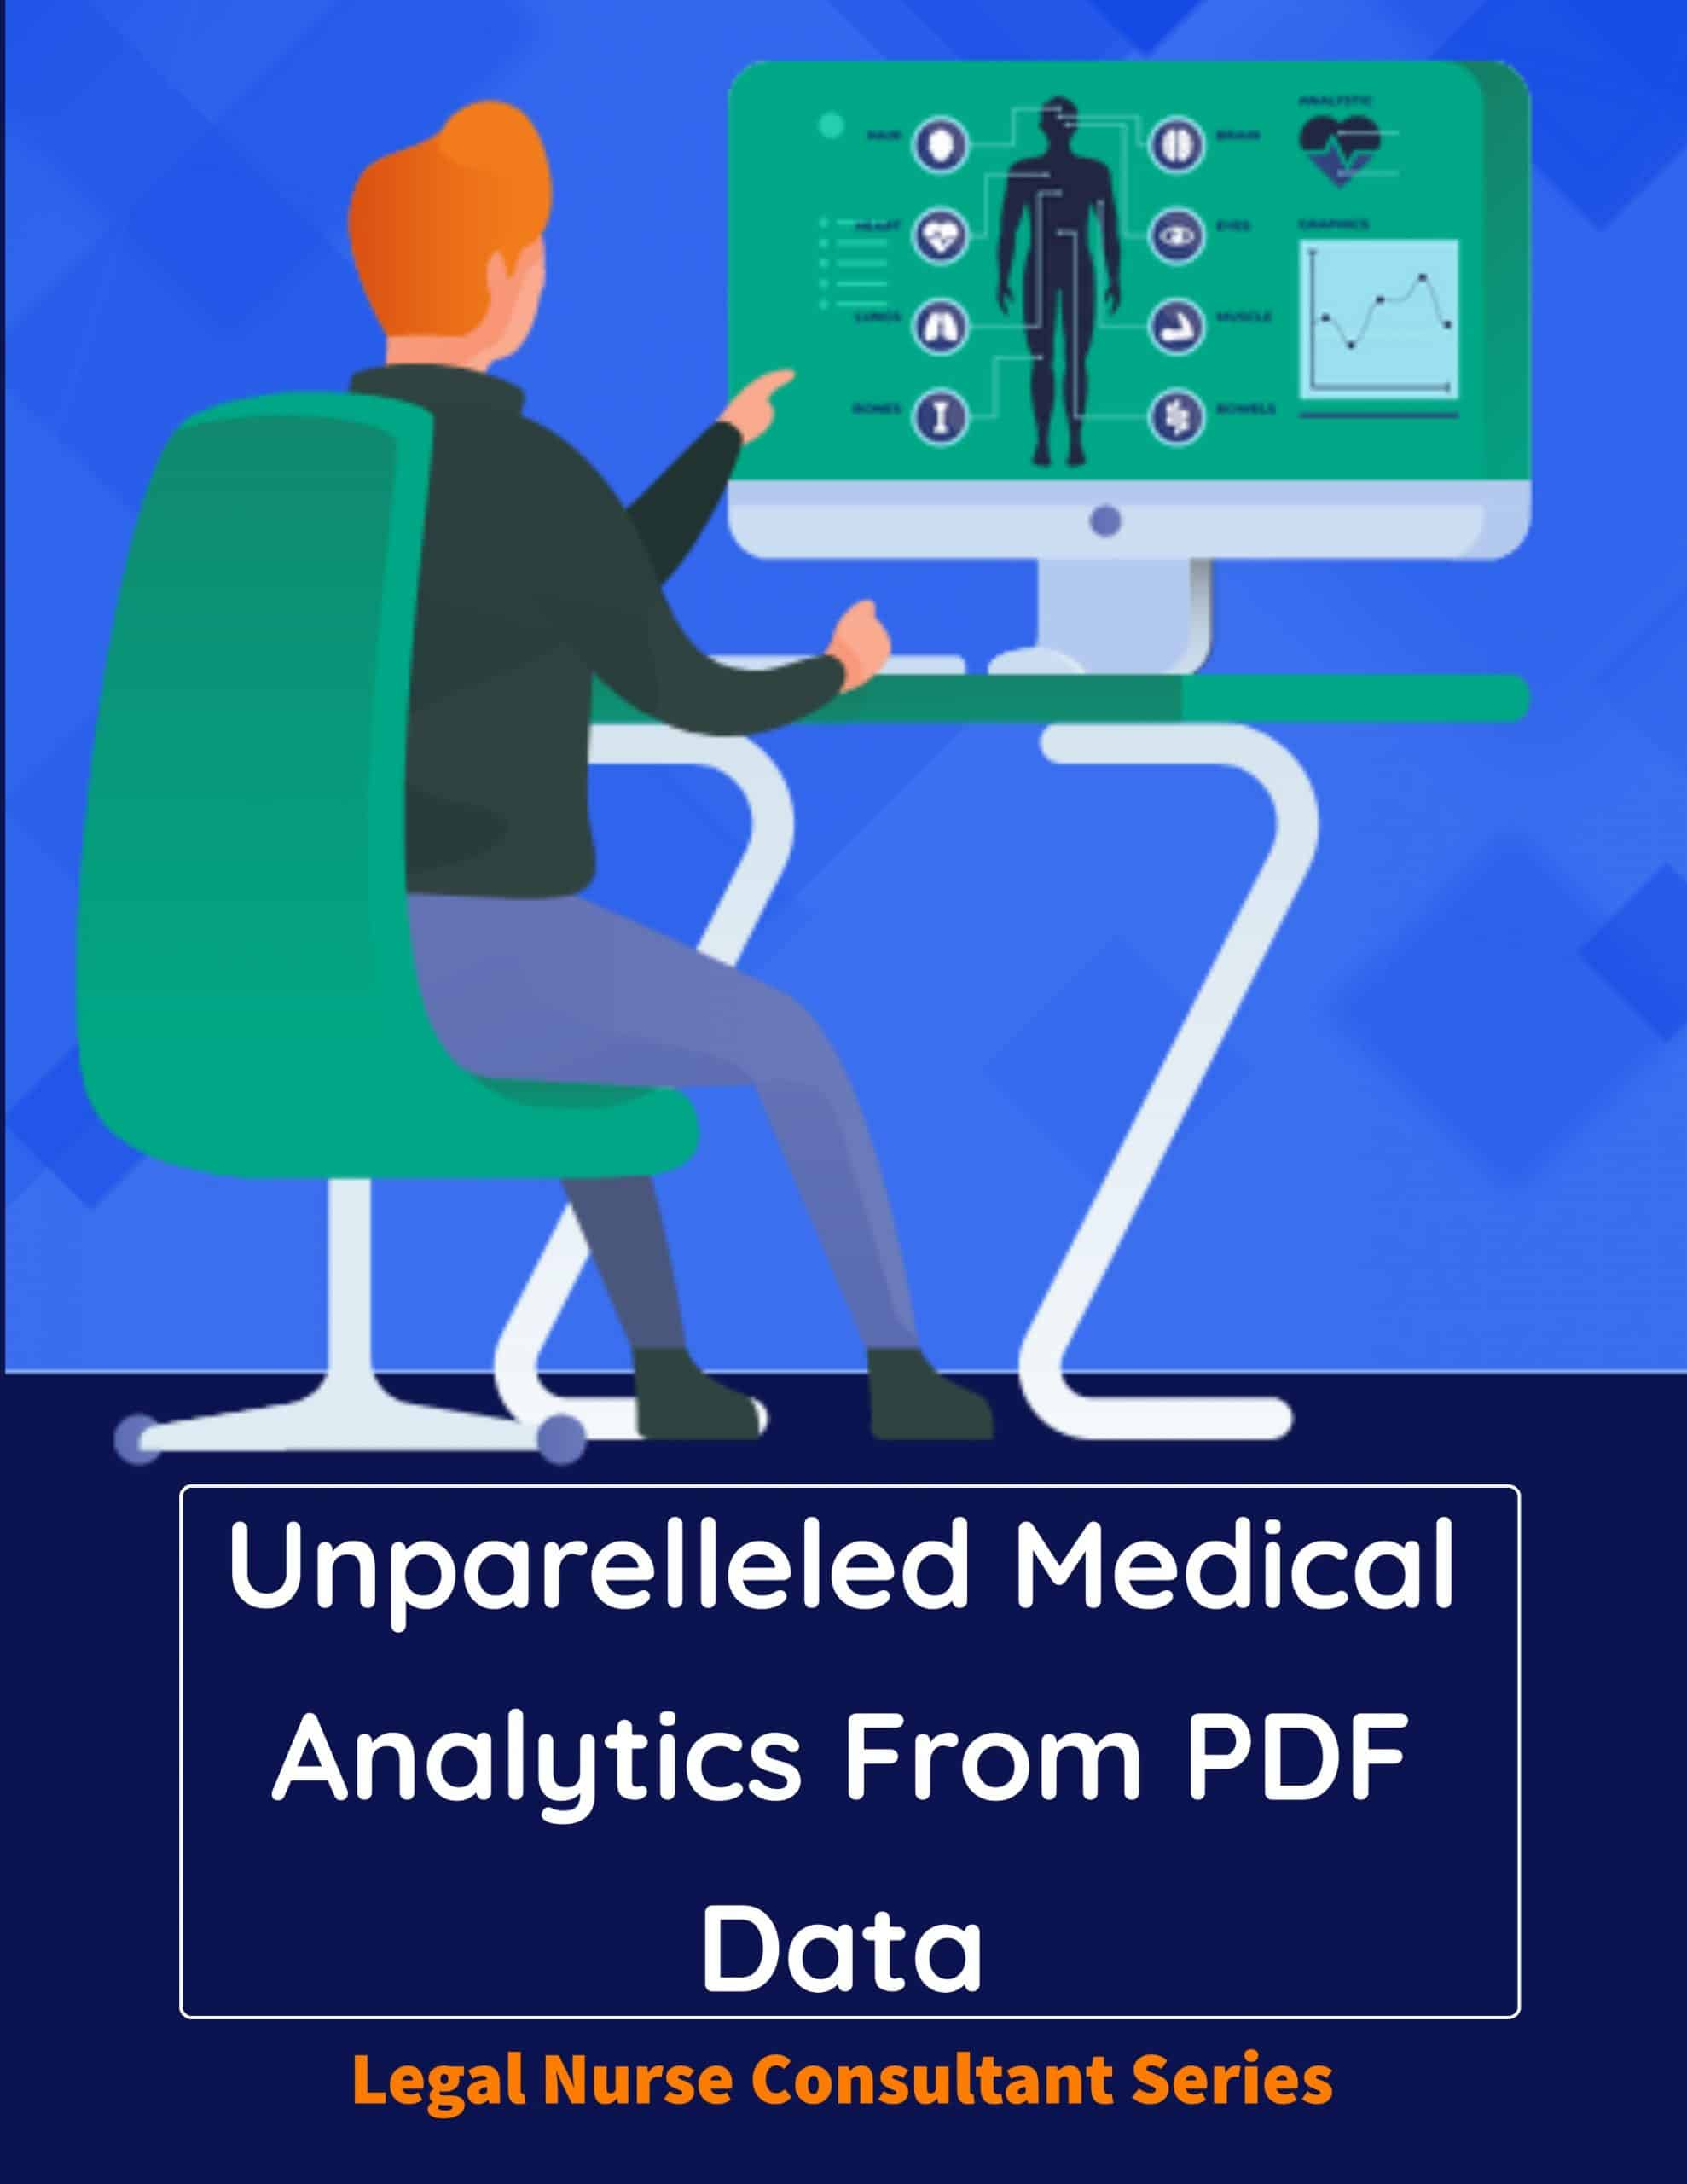 Unparelleled Medical Analytics from PDF data